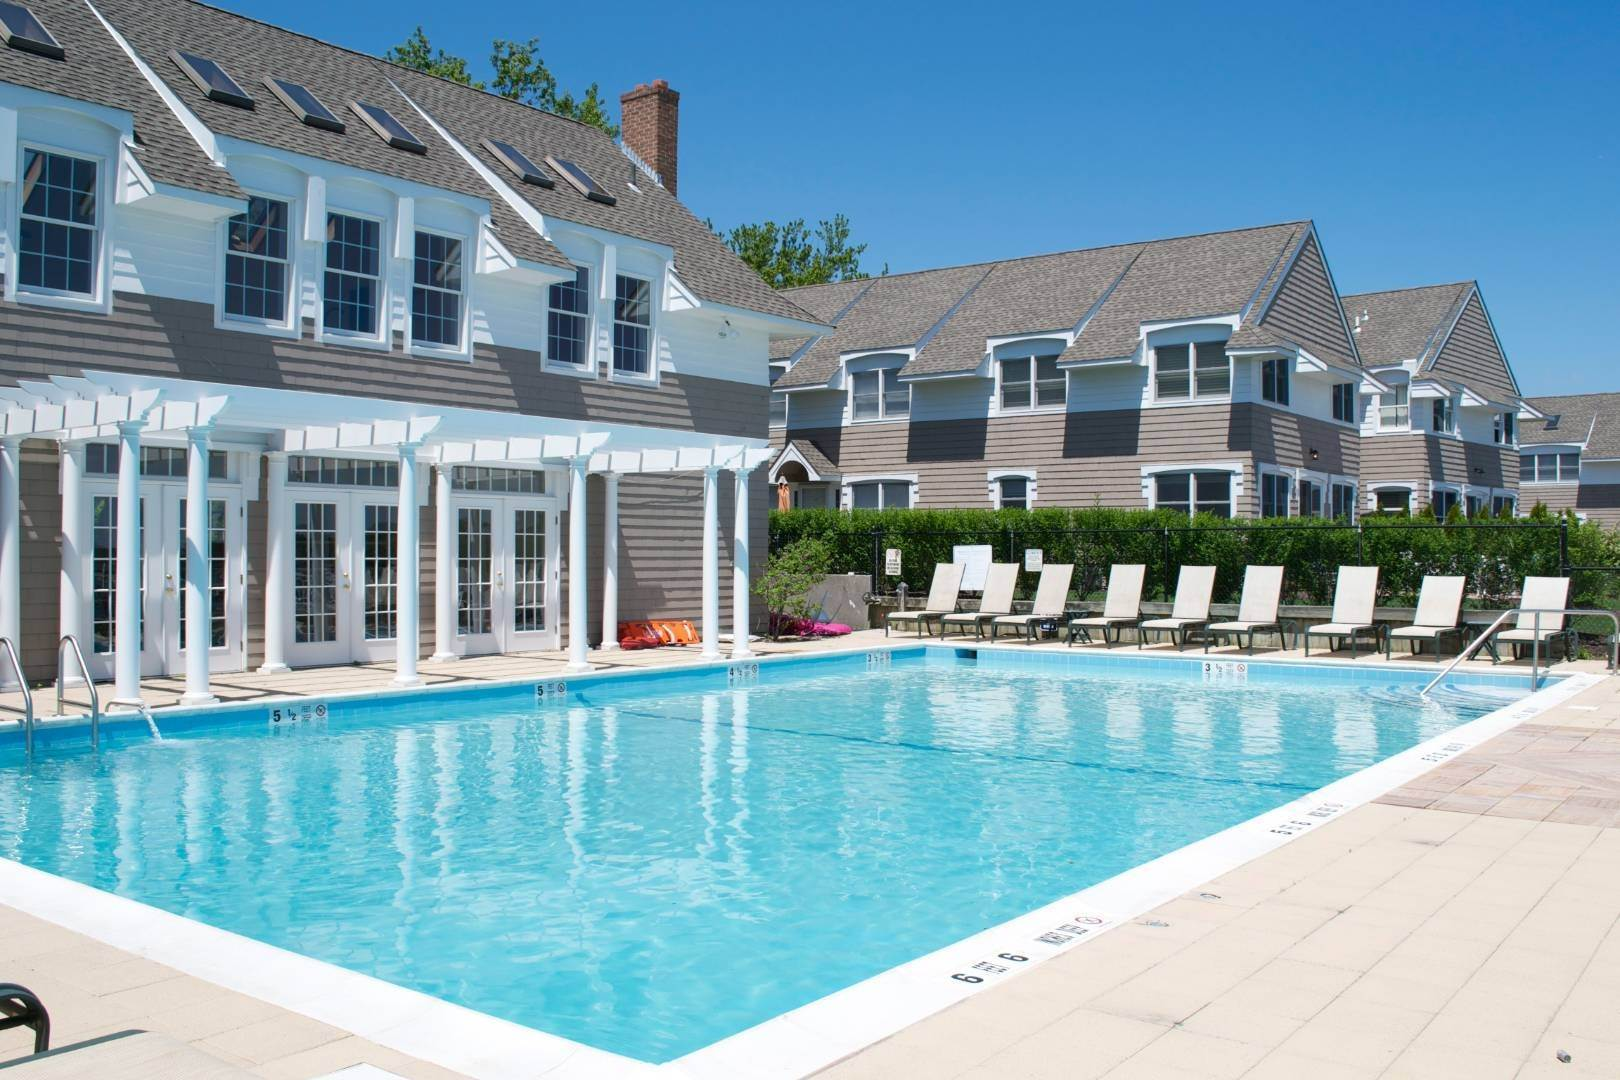 Condominiums at Bay Front Two Bedroom Condo Hampton Bays, NY 11946